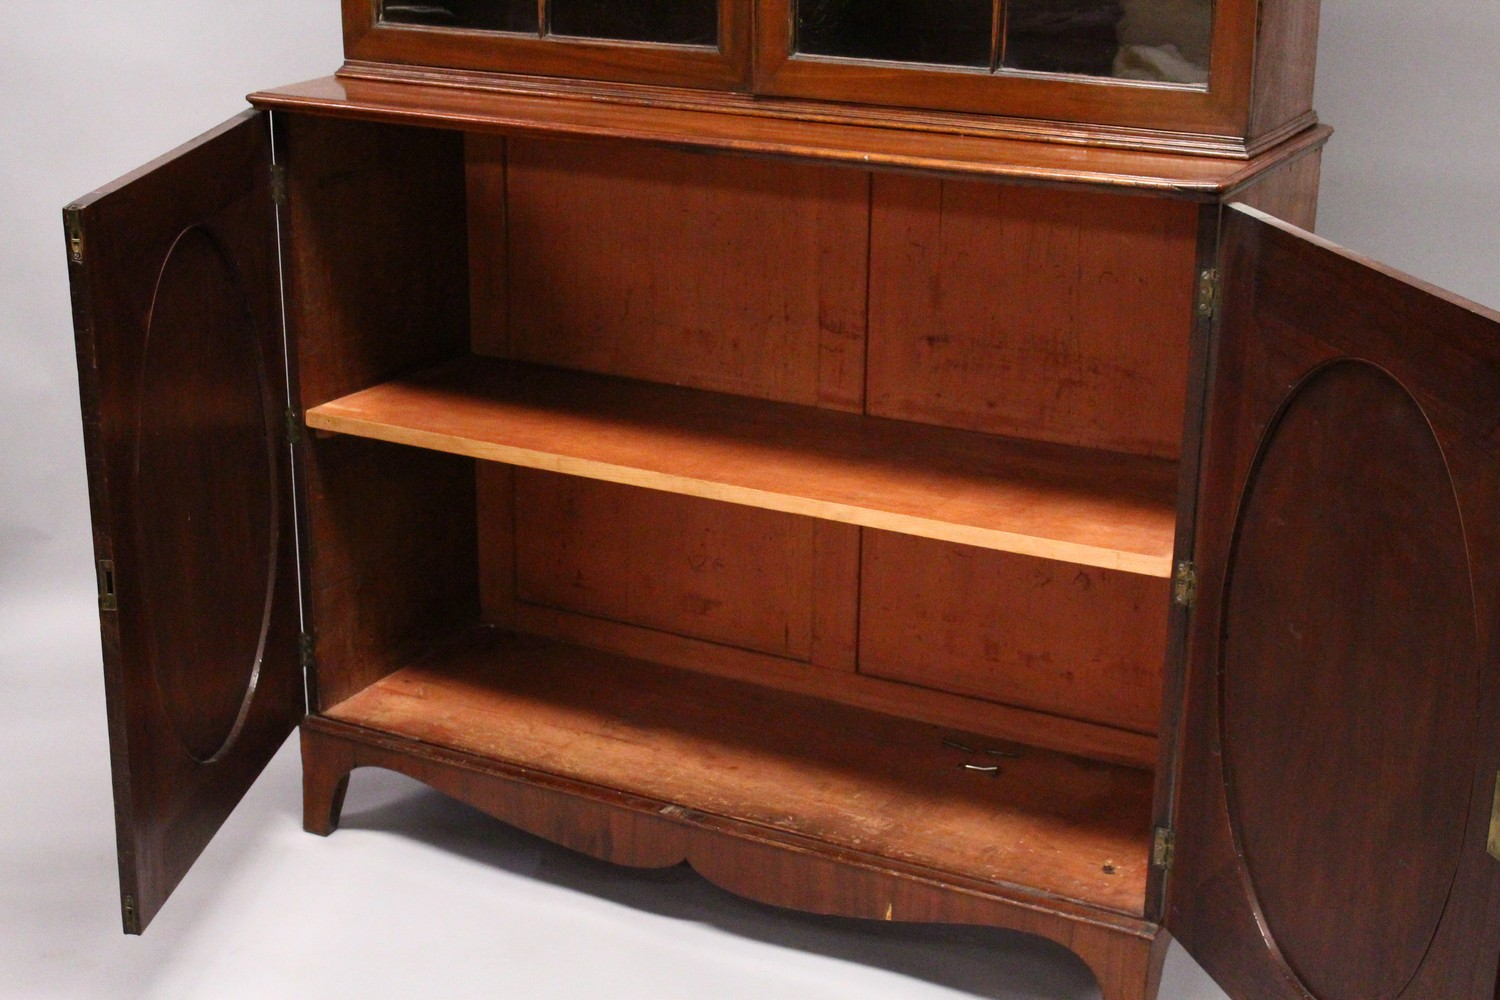 A GEORGE III DESIGN MAHOGANY CUPBOARD BOOKCASE, 19TH CENTURY, with a moulded cornice, pair of - Image 8 of 10